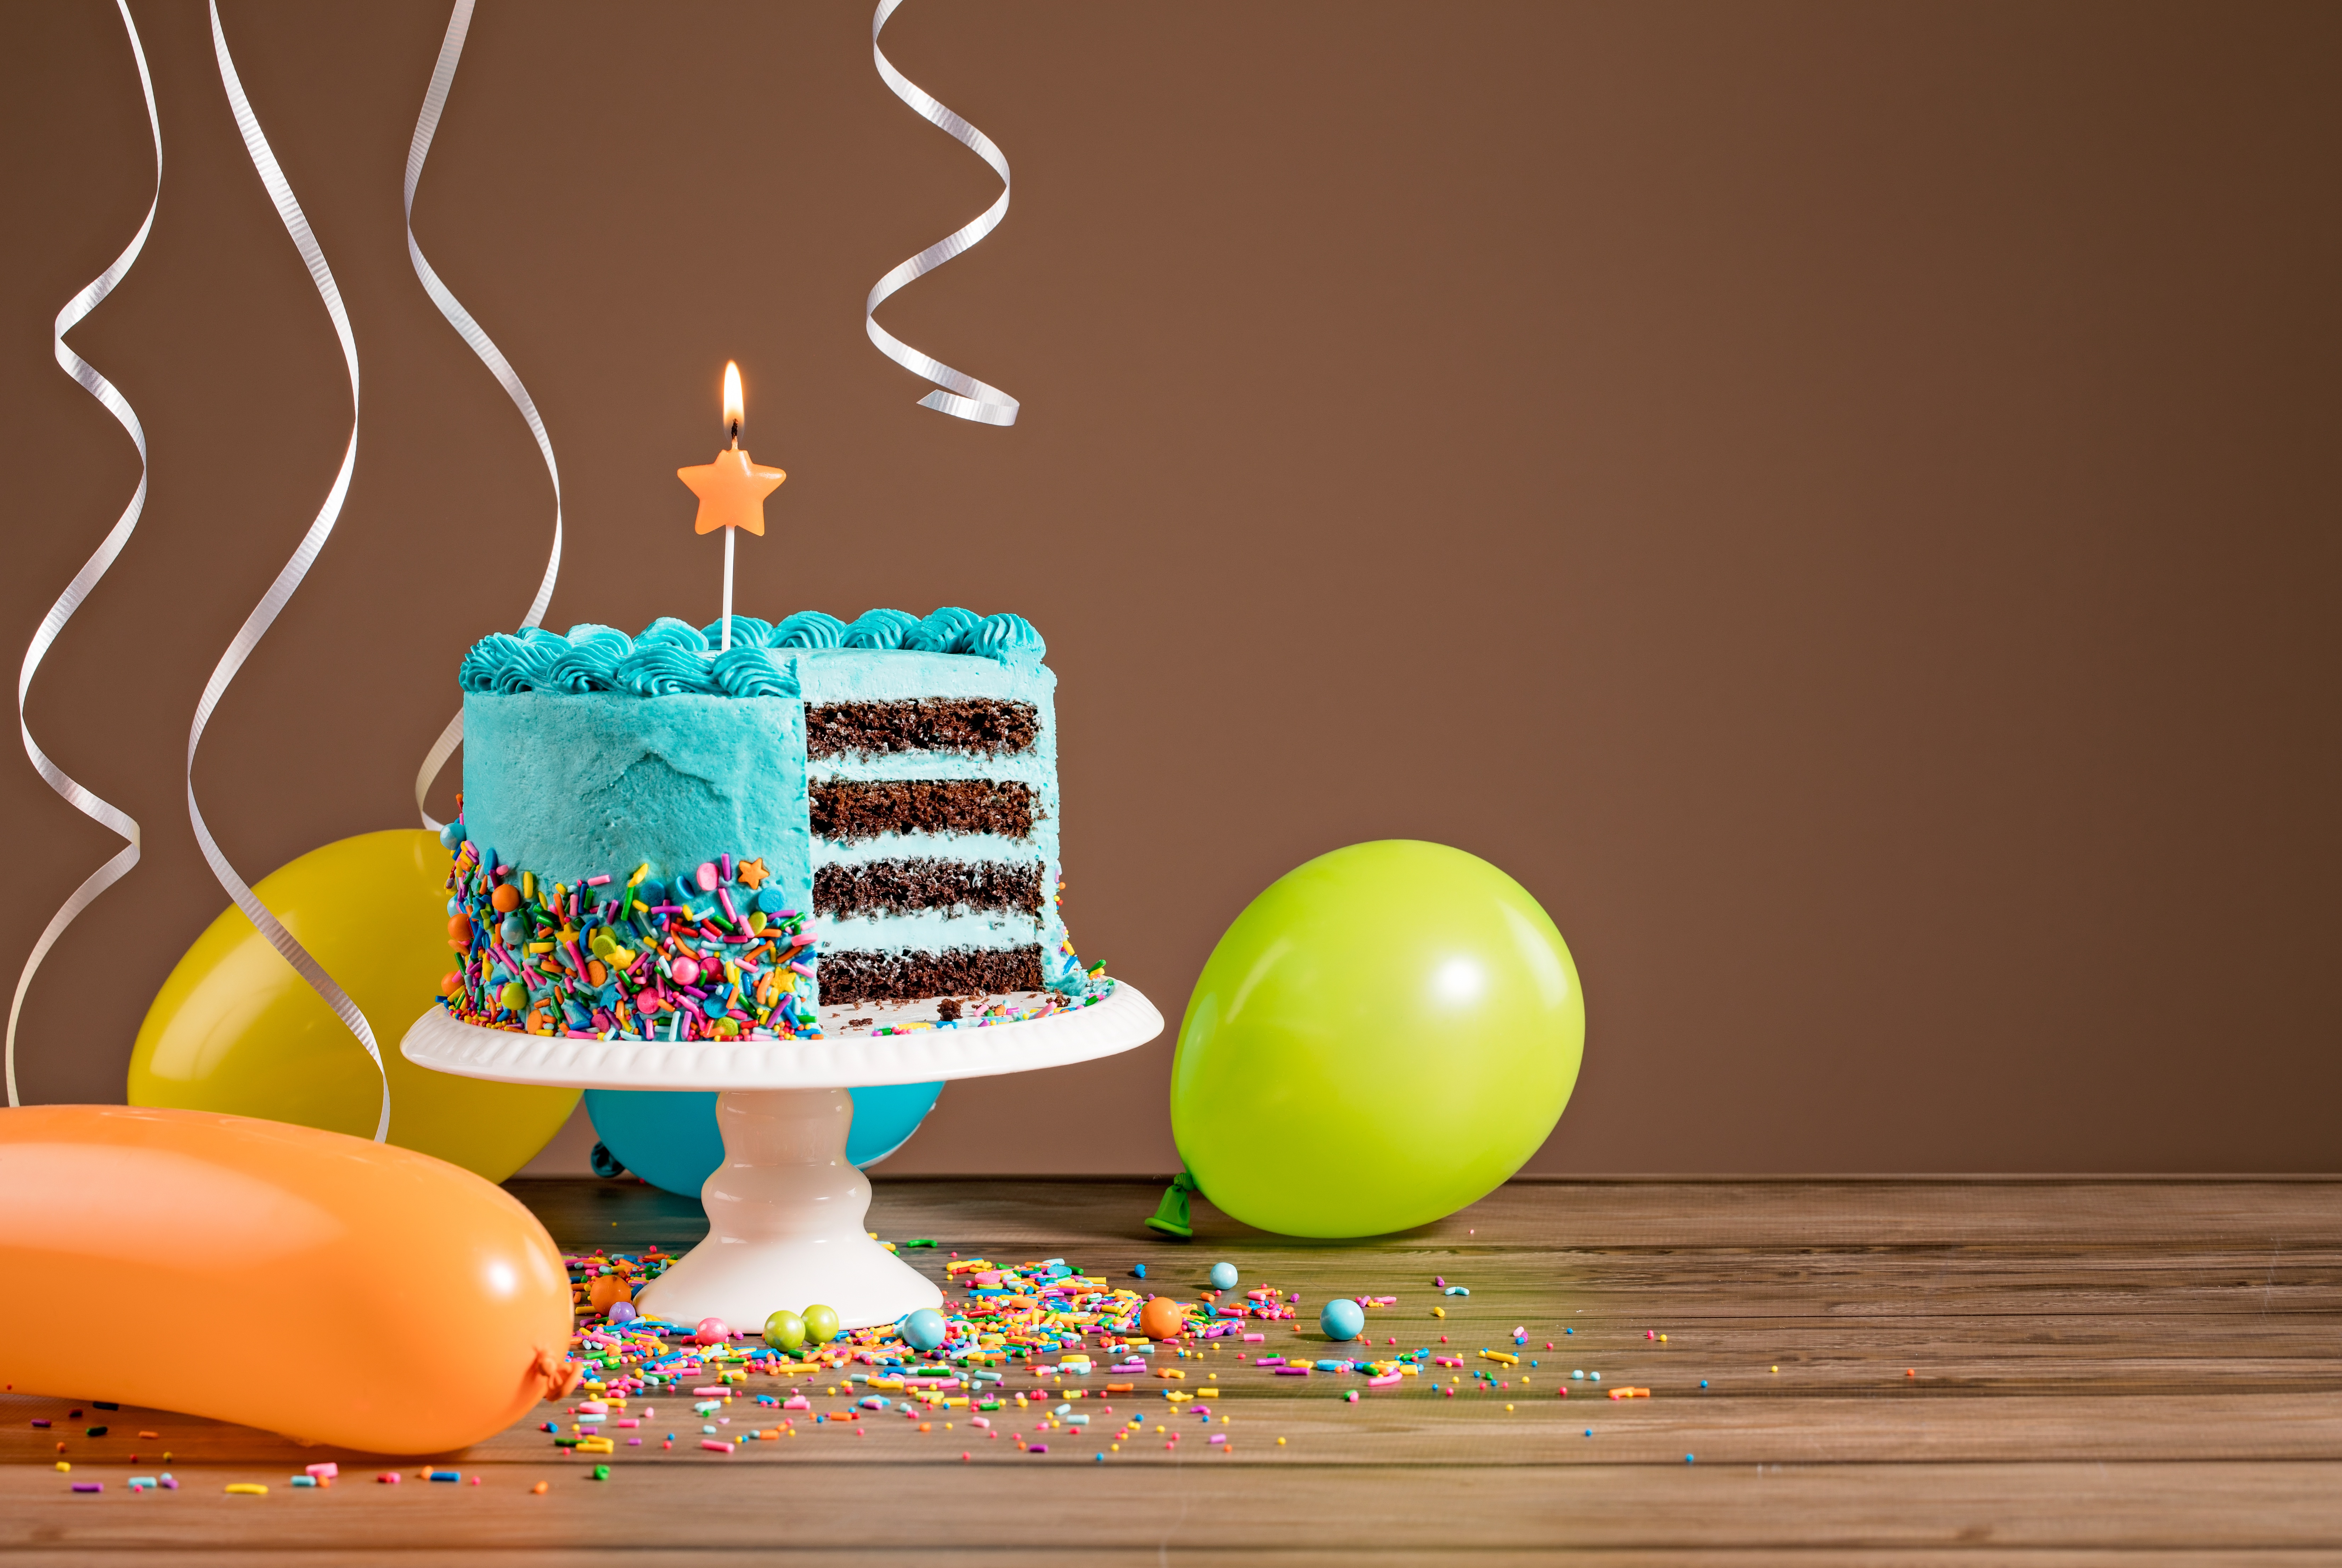 Image Of Balloons And Cake